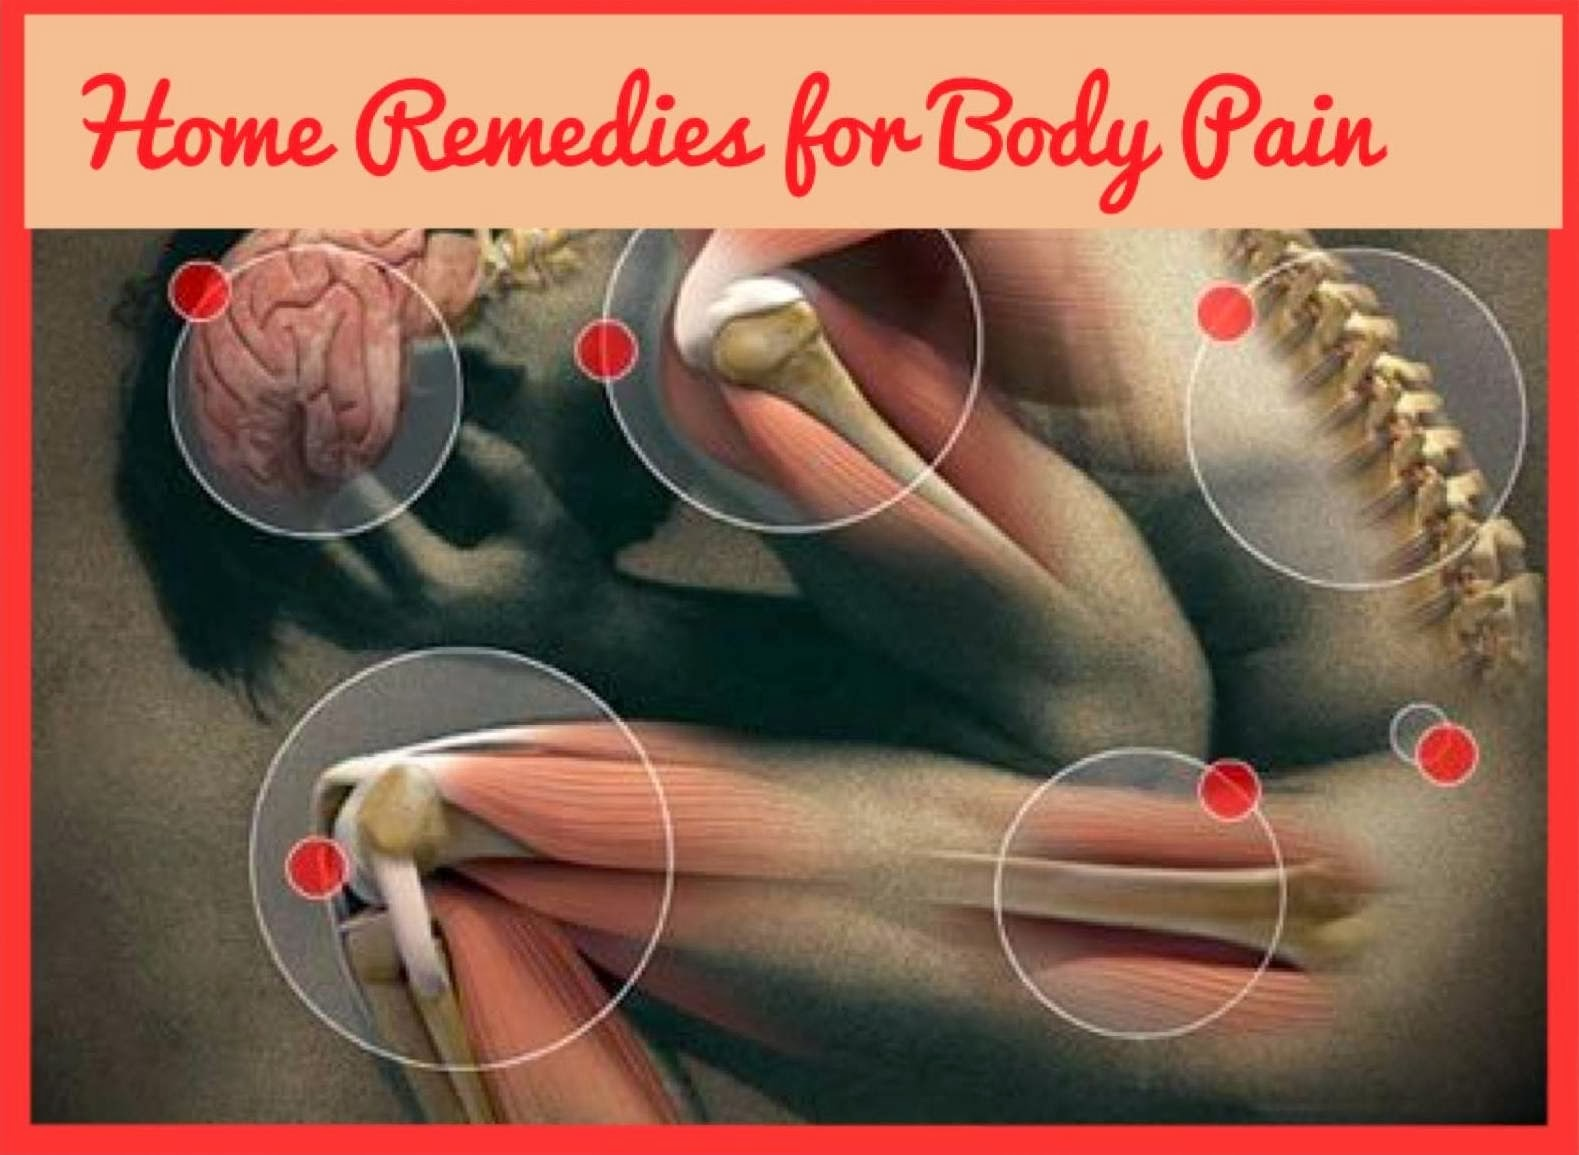 Home remedies for body pain, home remedies for neck pain , home remedies for back pain, home remedies for arms pain, home remedies for headaches , home remedies for legs pain, home remedies for muscle pain, home remedies for complete body pain, home remedies for joint pain, home remedies for tiredness, home remedies for  atheist , home remedies for winter pain, home remedies for winter joint pain, home remedies for emotional pain, Oil for body pain, Oil for neck pain , Oil for back pain, Oil for arms pain, Oilfor headaches , Oil for legs pain, Oil for muscle pain, Oil for complete body pain, Oil for joint pain, Oil for tiredness, Oil for  atheist , Oil for winter pain, Oil for winter joint pain, Oil for emotional pain,  Home made Oil for body pain, Home made Oil for neck pain , Home made  for back pain, Home made Oil for arms pain, Home made Oil for headaches , Home made oil for legs pain, Home made Oil for muscle pain, Home made Oil for complete body pain, Home made Oil for joint pain, Home made Oil for tiredness, Home made Oil for  atheist , Home made Oil for winter pain, Home made Oil for winter joint pain, Home made Oil for emotional pain, Black pepper Oil for body pain, Black pepper Oil for neck pain , Black pepper Oil for back pain, Black pepper Oil for arms pain, Black pepper Oil for headaches , Black pepper Oil for legs pain, Black pepper Oil for muscle pain, Black pepper Oil for complete body pain, Black pepper Oil for joint pain, Black pepper Oil for tiredness, Black pepper Oil for  atheist , Black pepper Oil for winter pain, Black pepper Oil for winter joint pain, Black pepper Oil for emotional pain, Garlic Oil for body pain, Garlic Oil for neck pain , Garlic Oil for back pain, Garlic Oil for arms pain, Garlic Oil for headaches , Garlic Oil for legs pain, Garlic Oil for muscle pain, Garlic Oil for complete body pain, Garlic Oil for joint pain, Garlic Oil for tiredness, Garlic Oil for  atheist , Garlic Oil for winter pain, Garlic Oil for winter joint pain, Garlic Oil for emotional pain, how to make oil at home, how to make  essential oil at home, how to make infused oil at home, how to make essential oil, how to make pepper oil, how to make pepper oil at home, how to make peppercorn oil, how to make peppercorn oil at home, how to make black pepper oil, how to make black pepper oil at home, how to make garlic oil, how to make garlic oil at home, how to make garlic and pepper oil, garlic oil , pepper oil, peppercorn oil, black pepper oil, peppercorn oil, pepper essential oil, black pepper essential oil, peppercorn essential oil, garlic essential oil,body pain, neck pain,